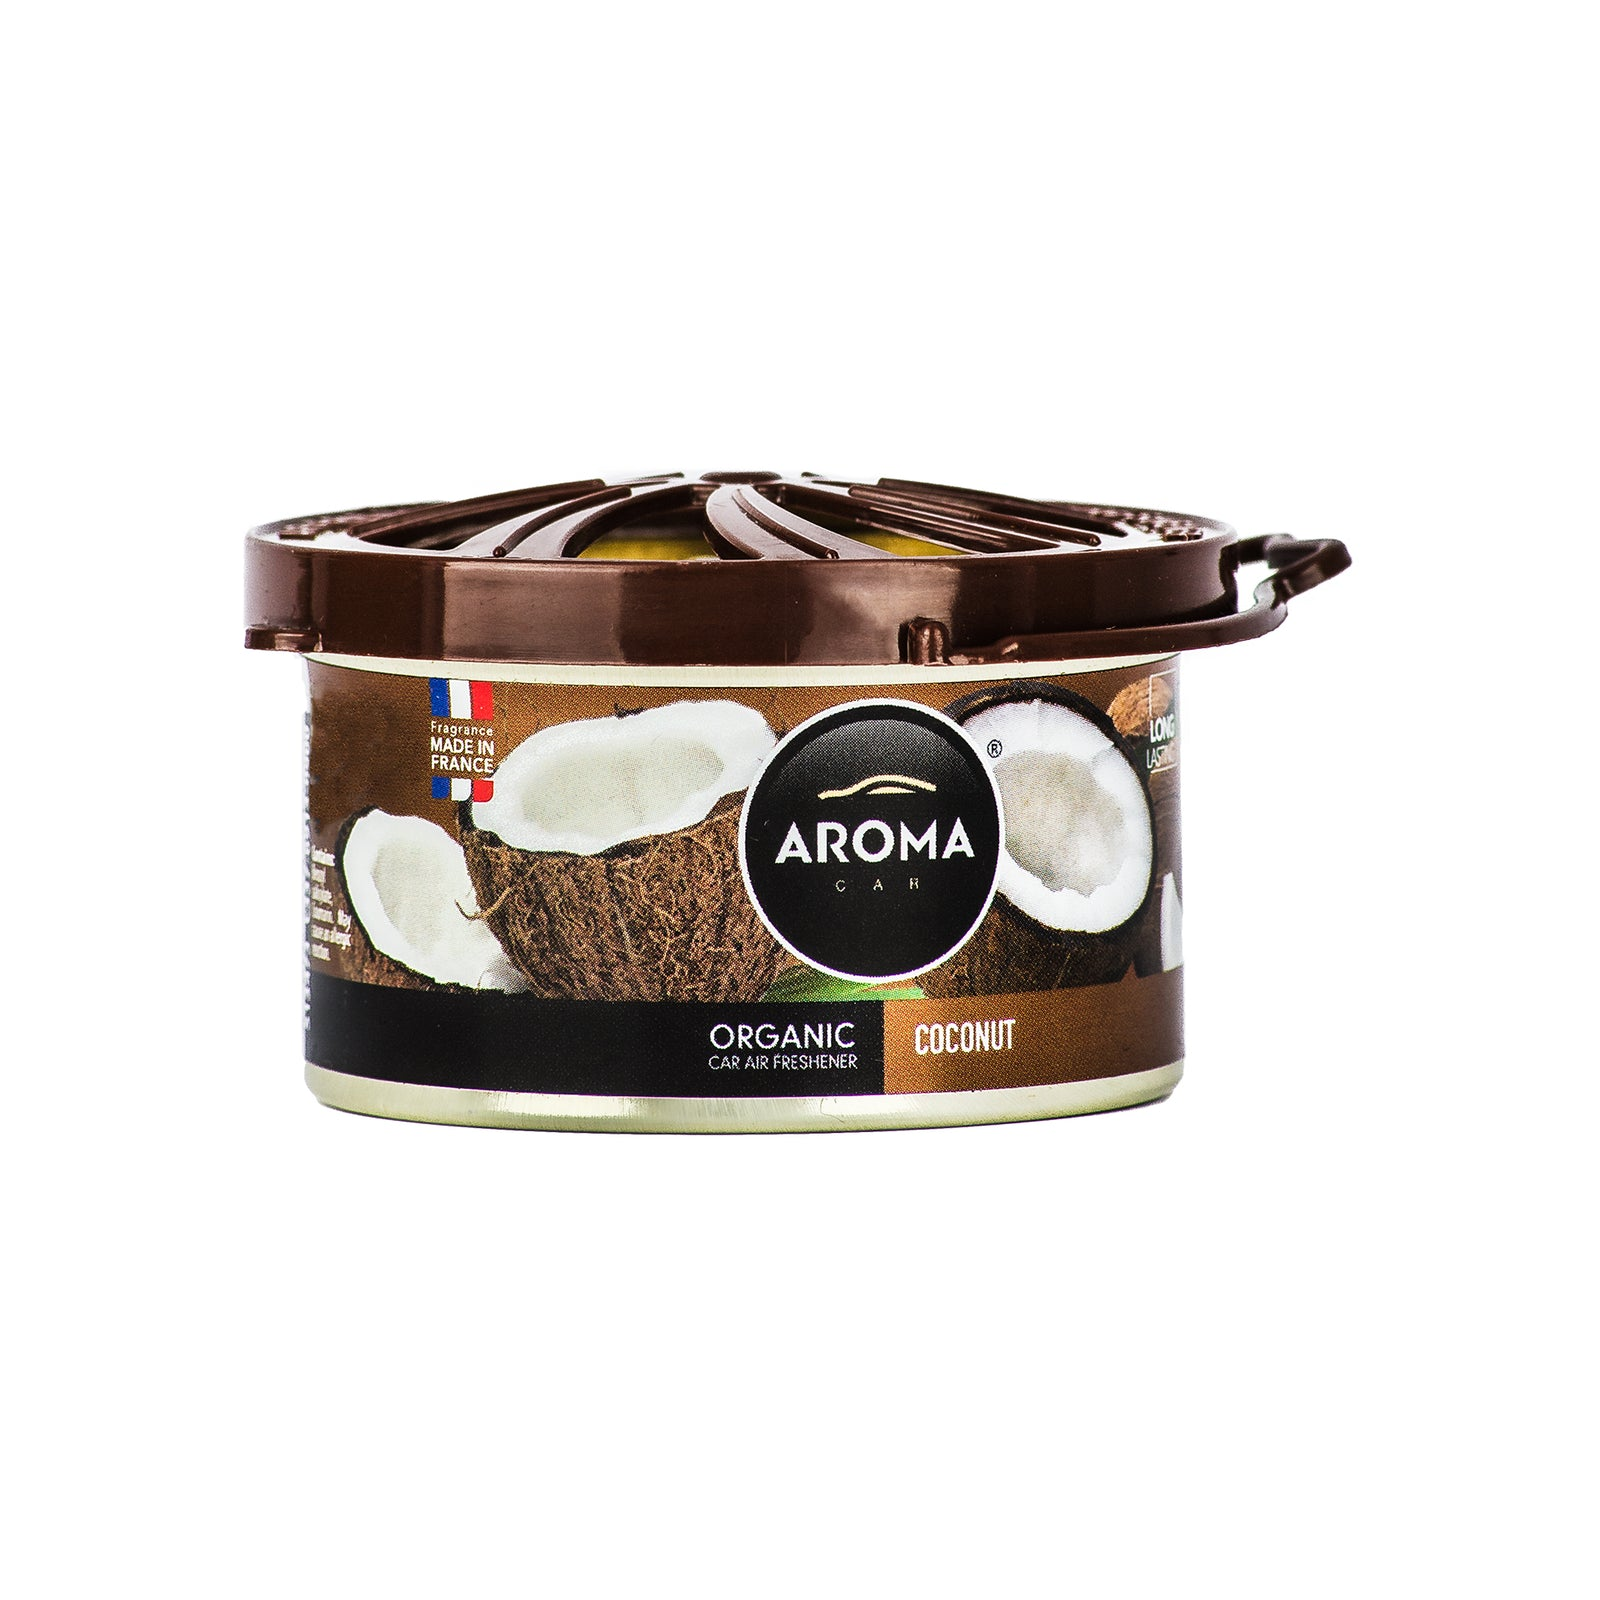 Aroma Car Organic 40g Coconut Standing